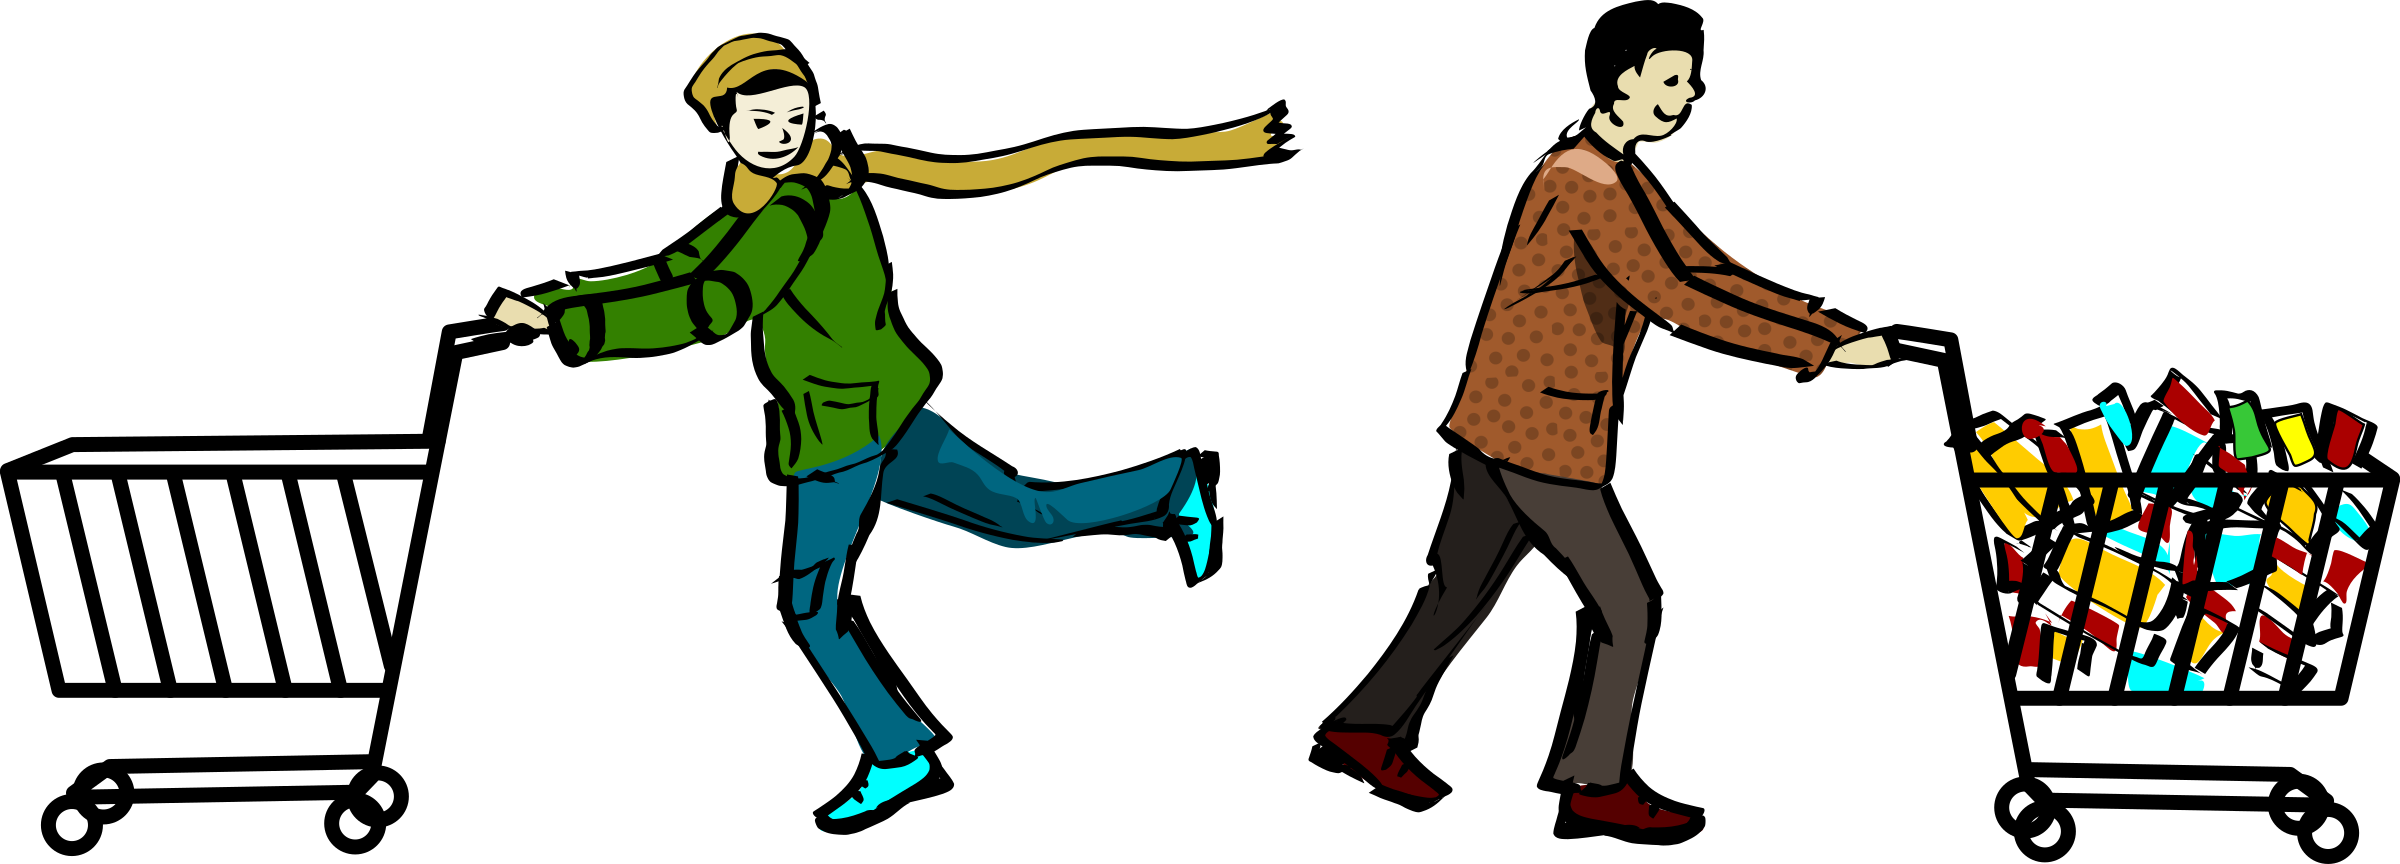 Clipart man shopping. Two men with carts